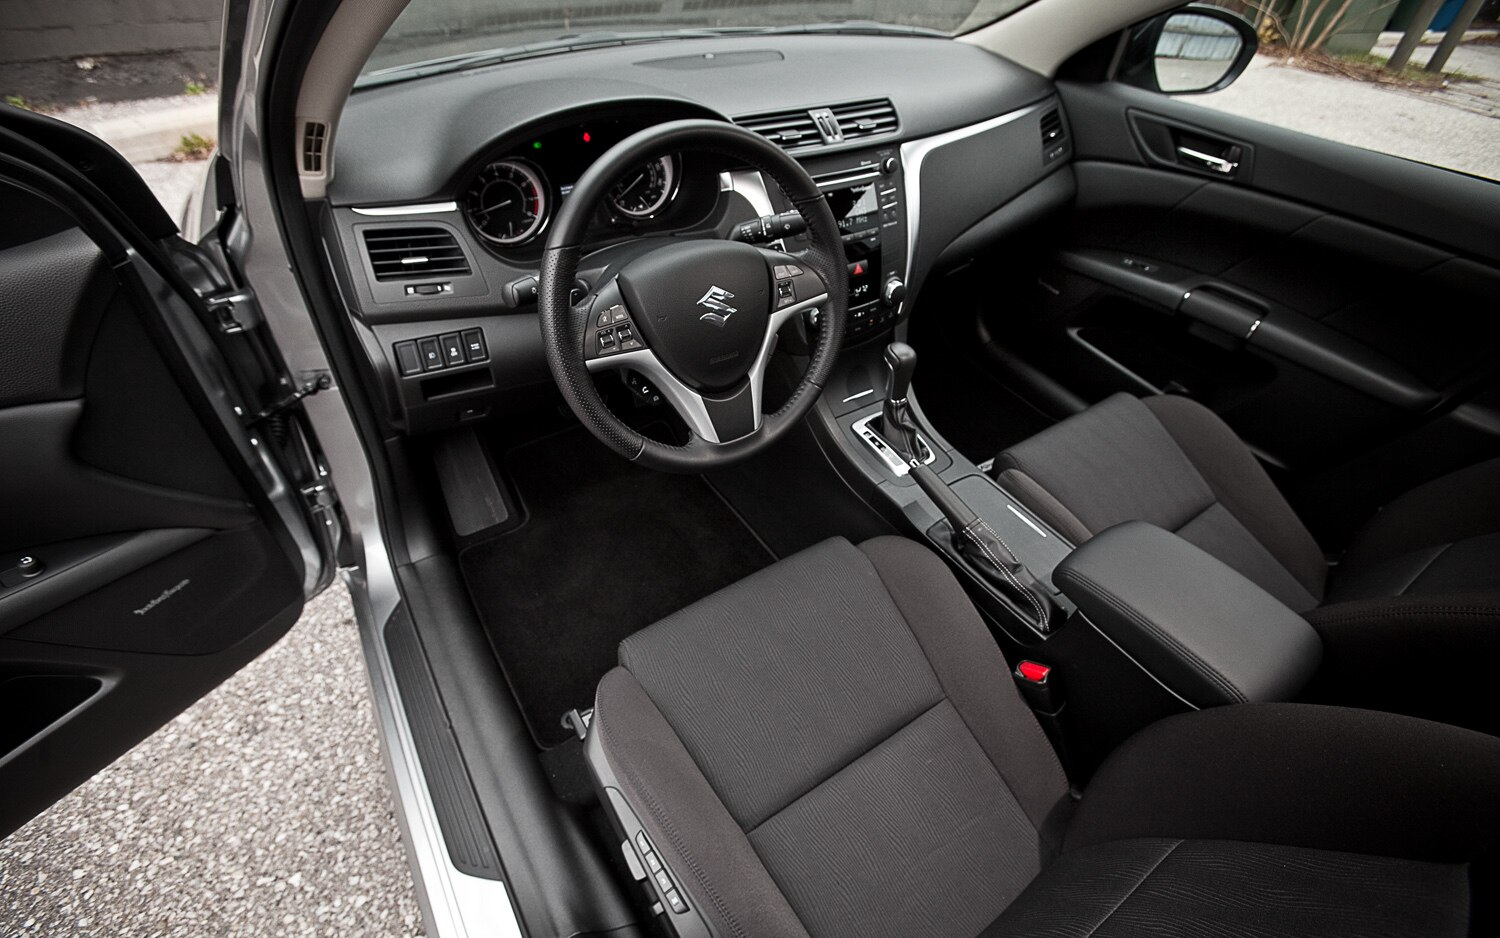 2012 suzuki kizashi sport gts awd editors 39 notebook. Black Bedroom Furniture Sets. Home Design Ideas